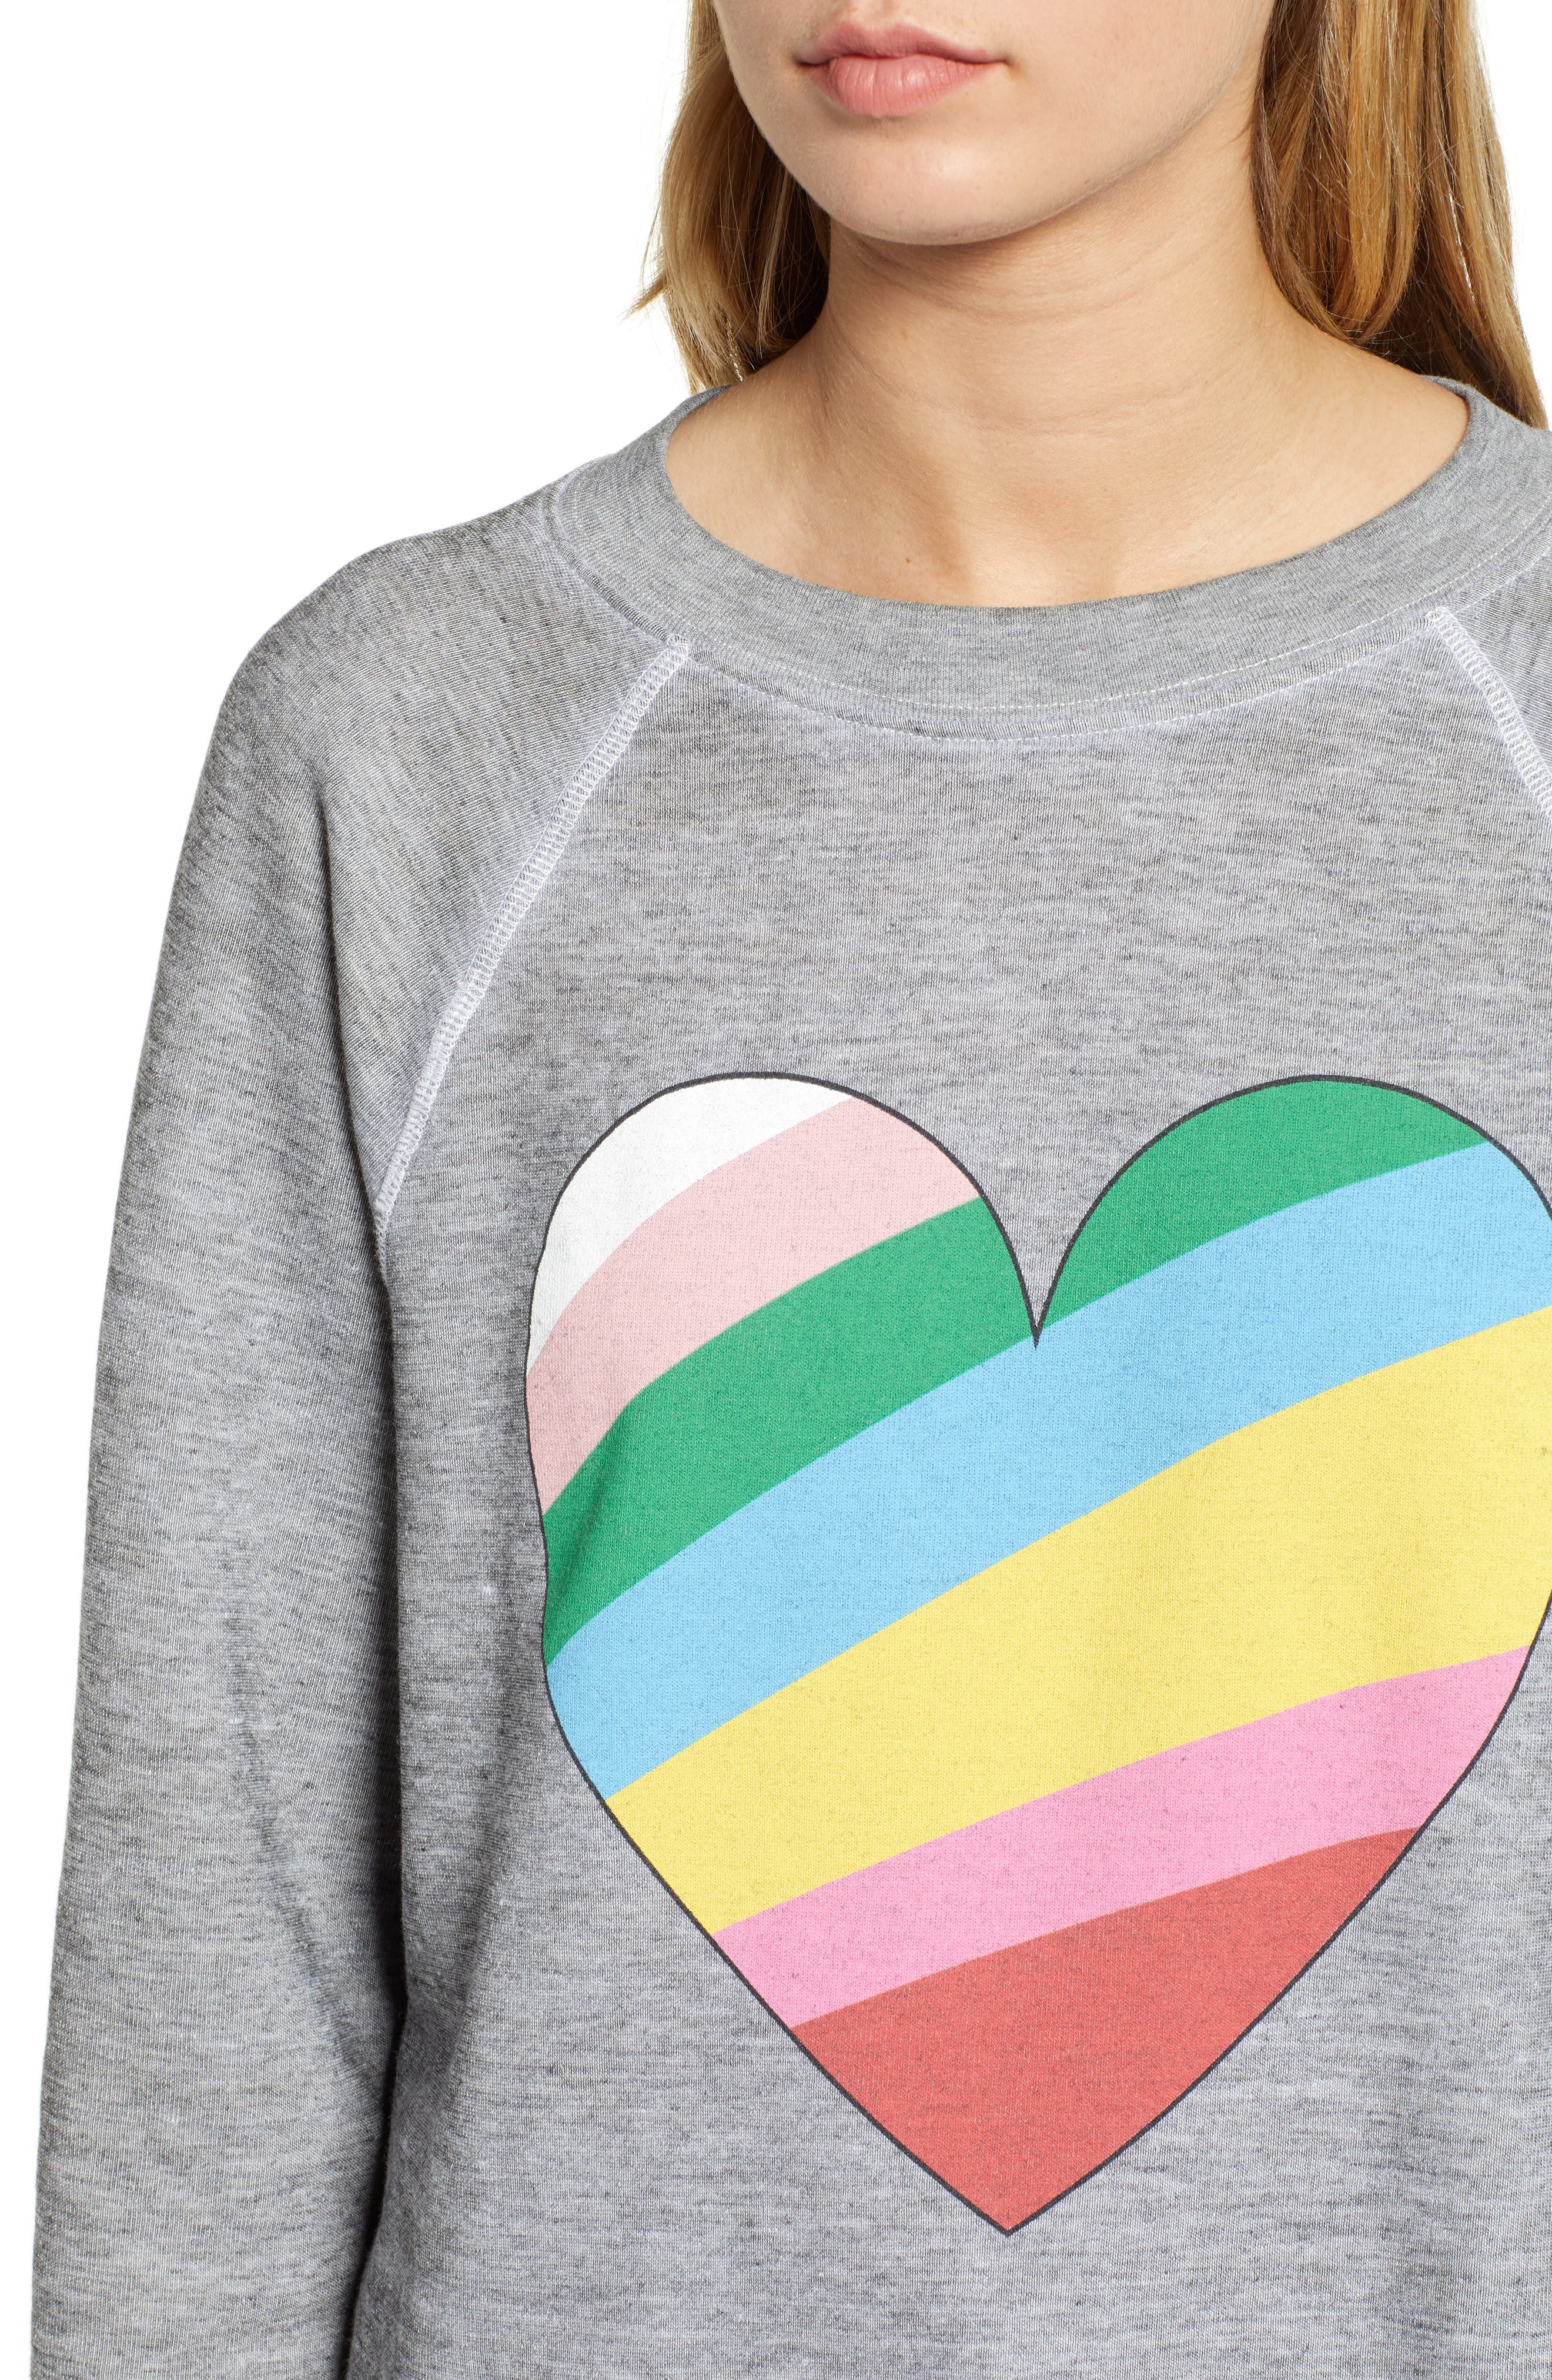 Sommers Love Hearts Sweatshirt,                             Alternate thumbnail 4, color,                             HEATHER